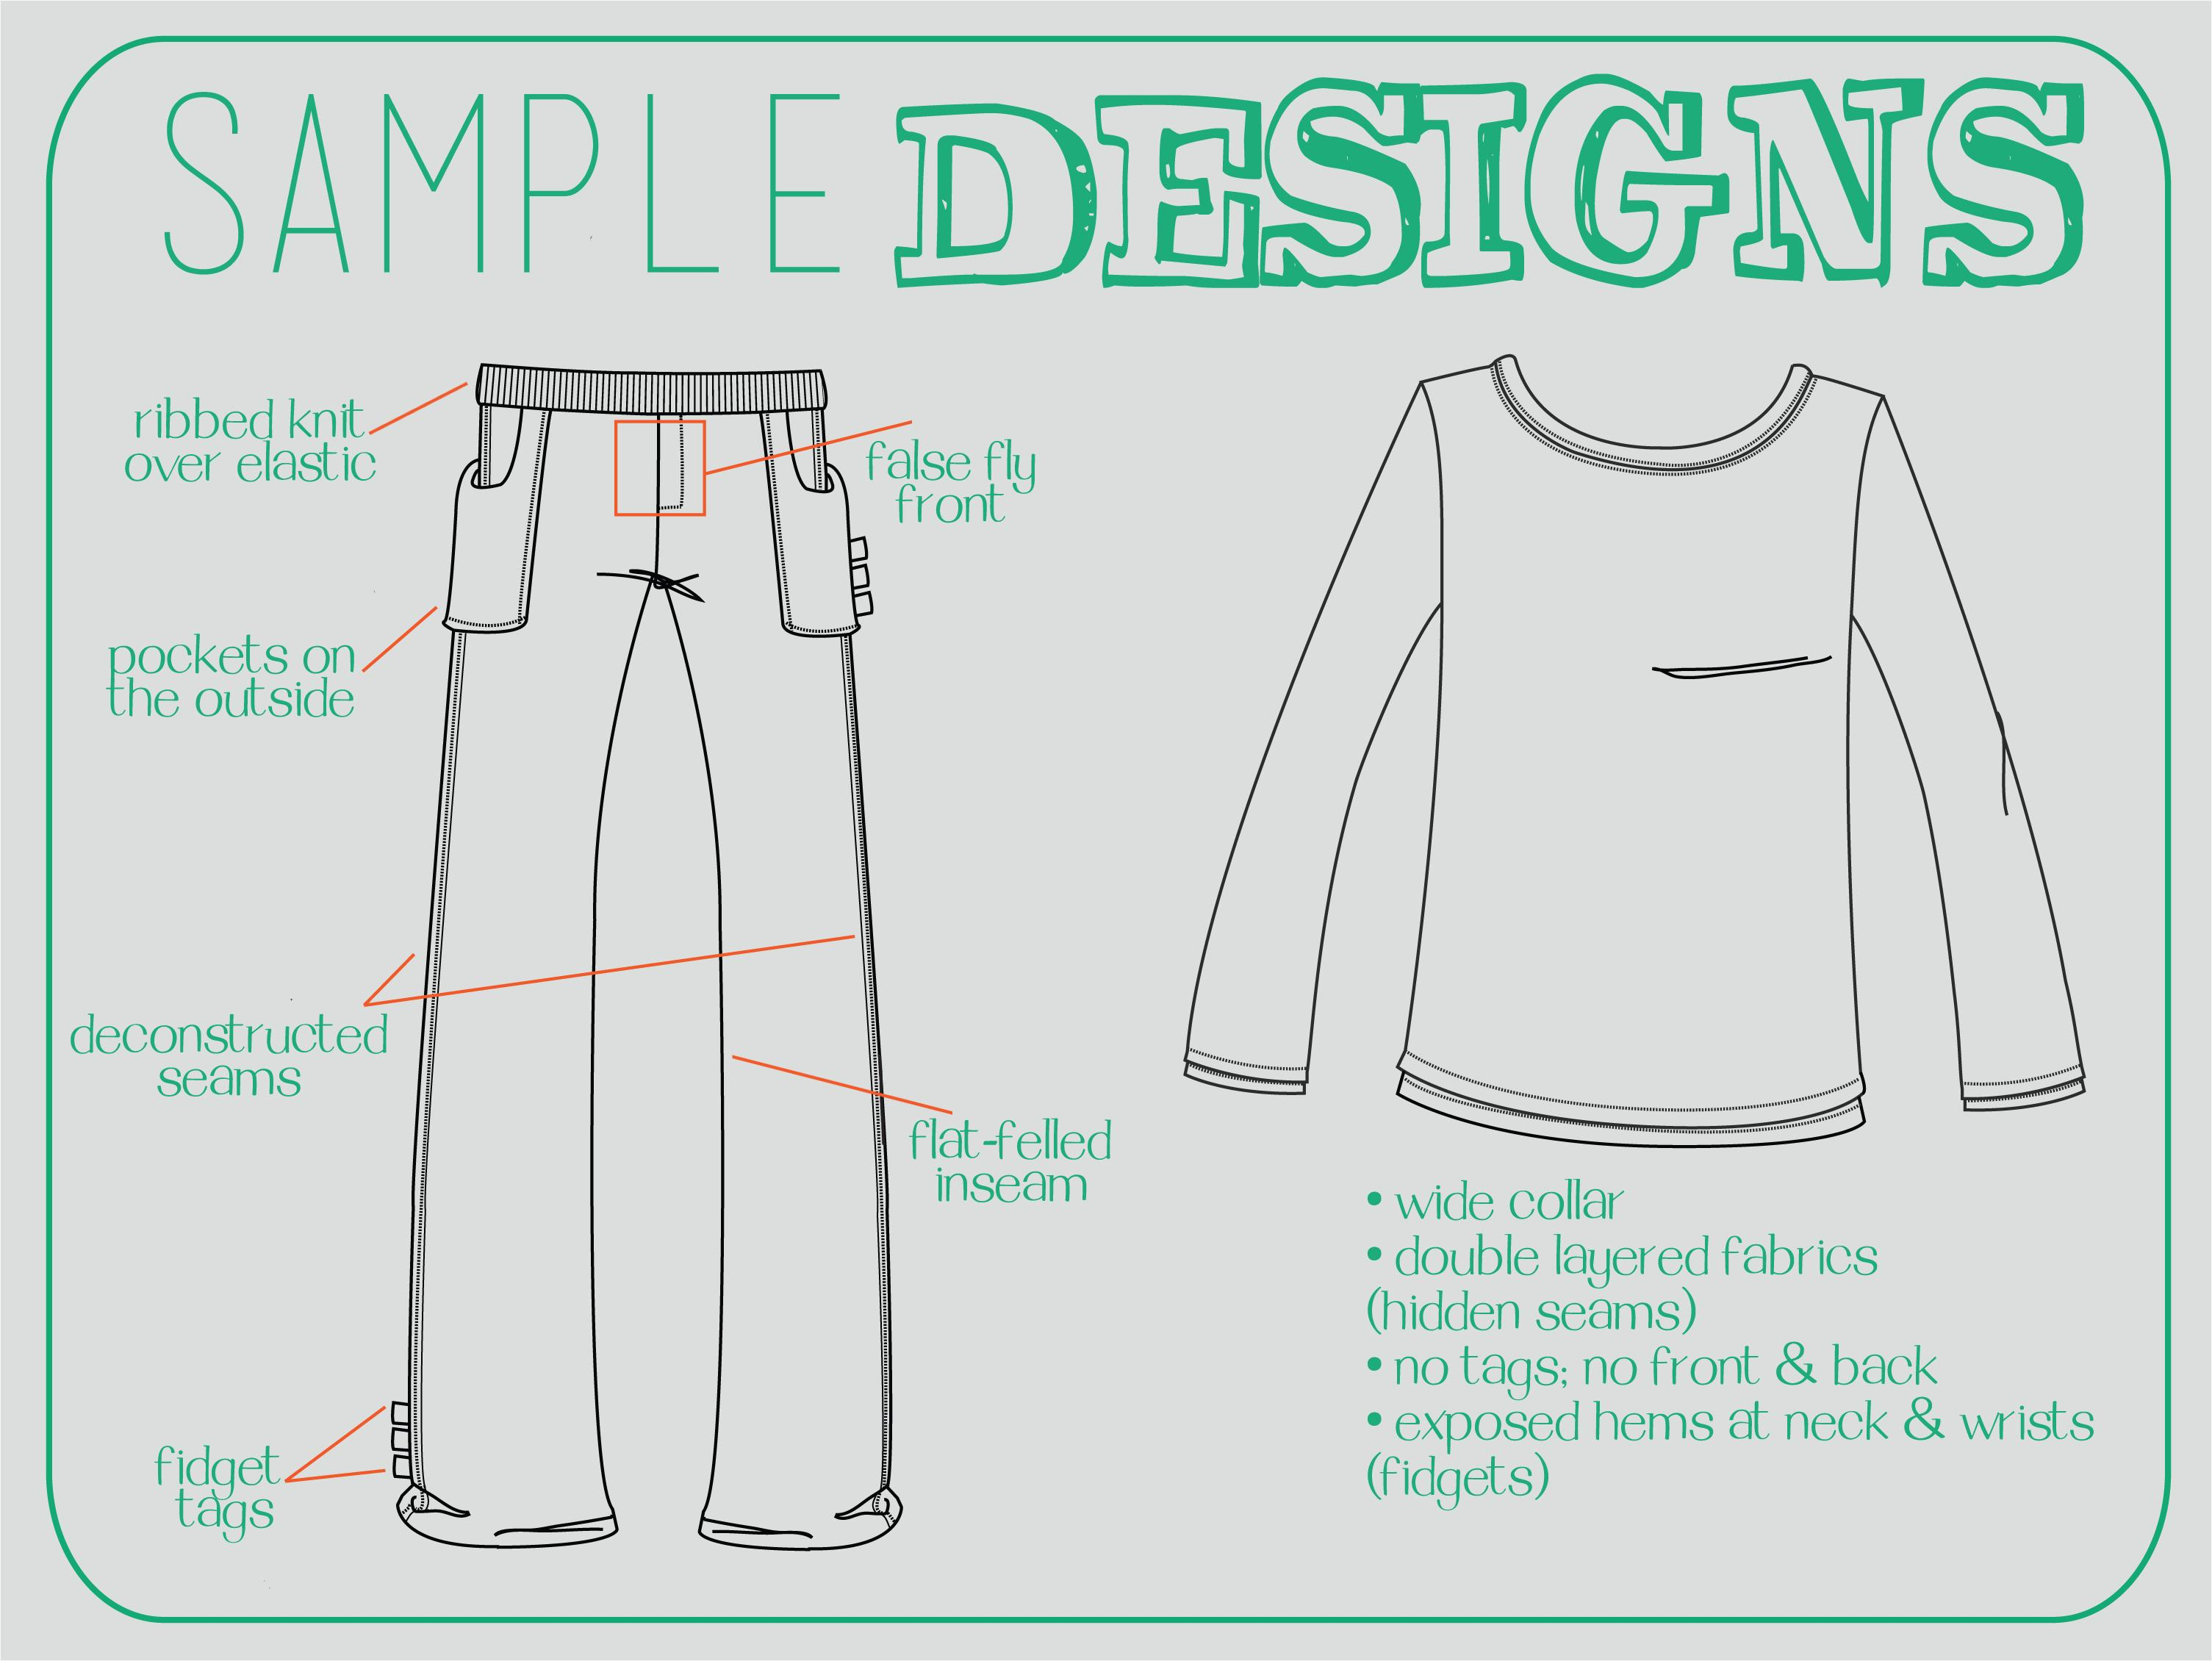 SCOUT clothing - image 3 - student project